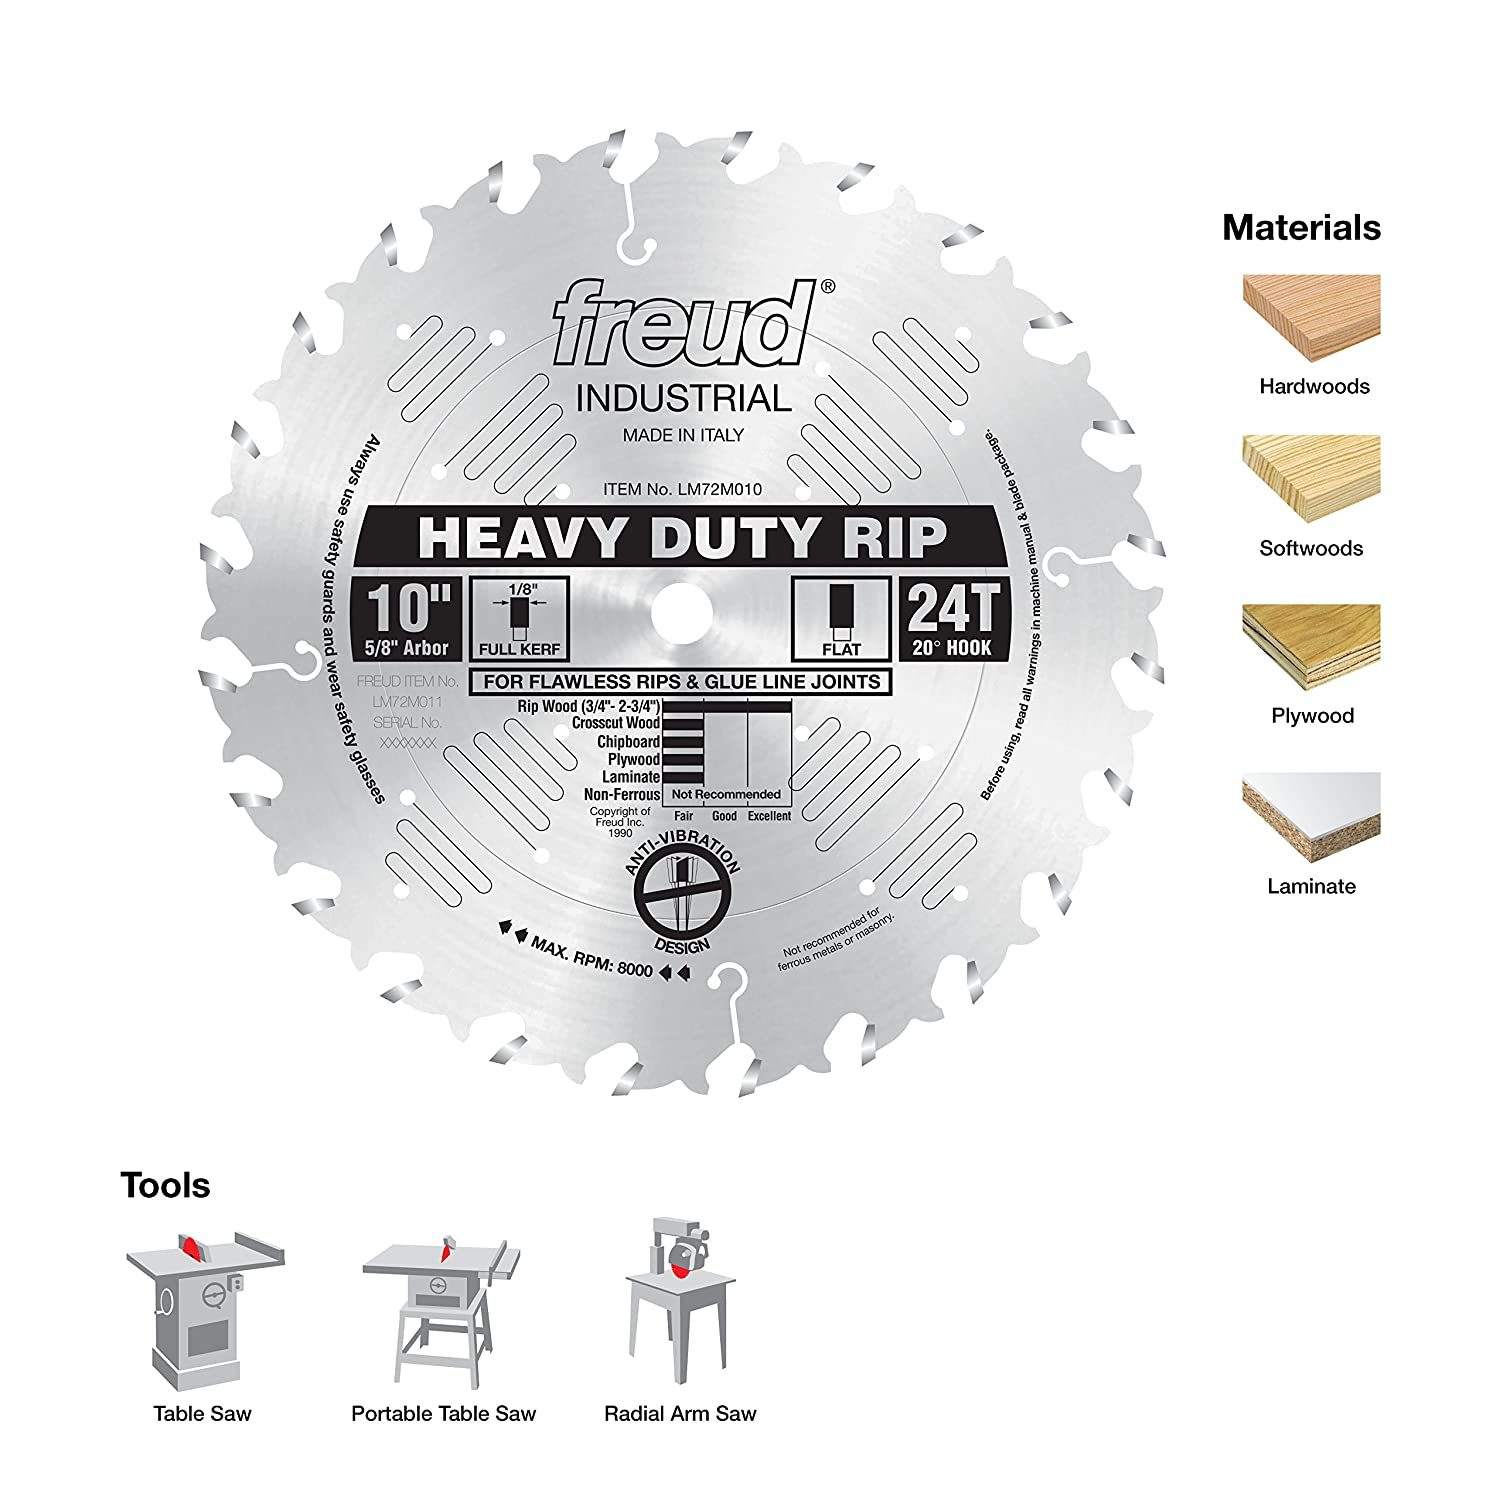 Freud 10 x 24t heavy duty rip blade lm72m010 power saw blades freud 10 x 24t heavy duty rip blade lm72m010 power saw blades amazon keyboard keysfo Images